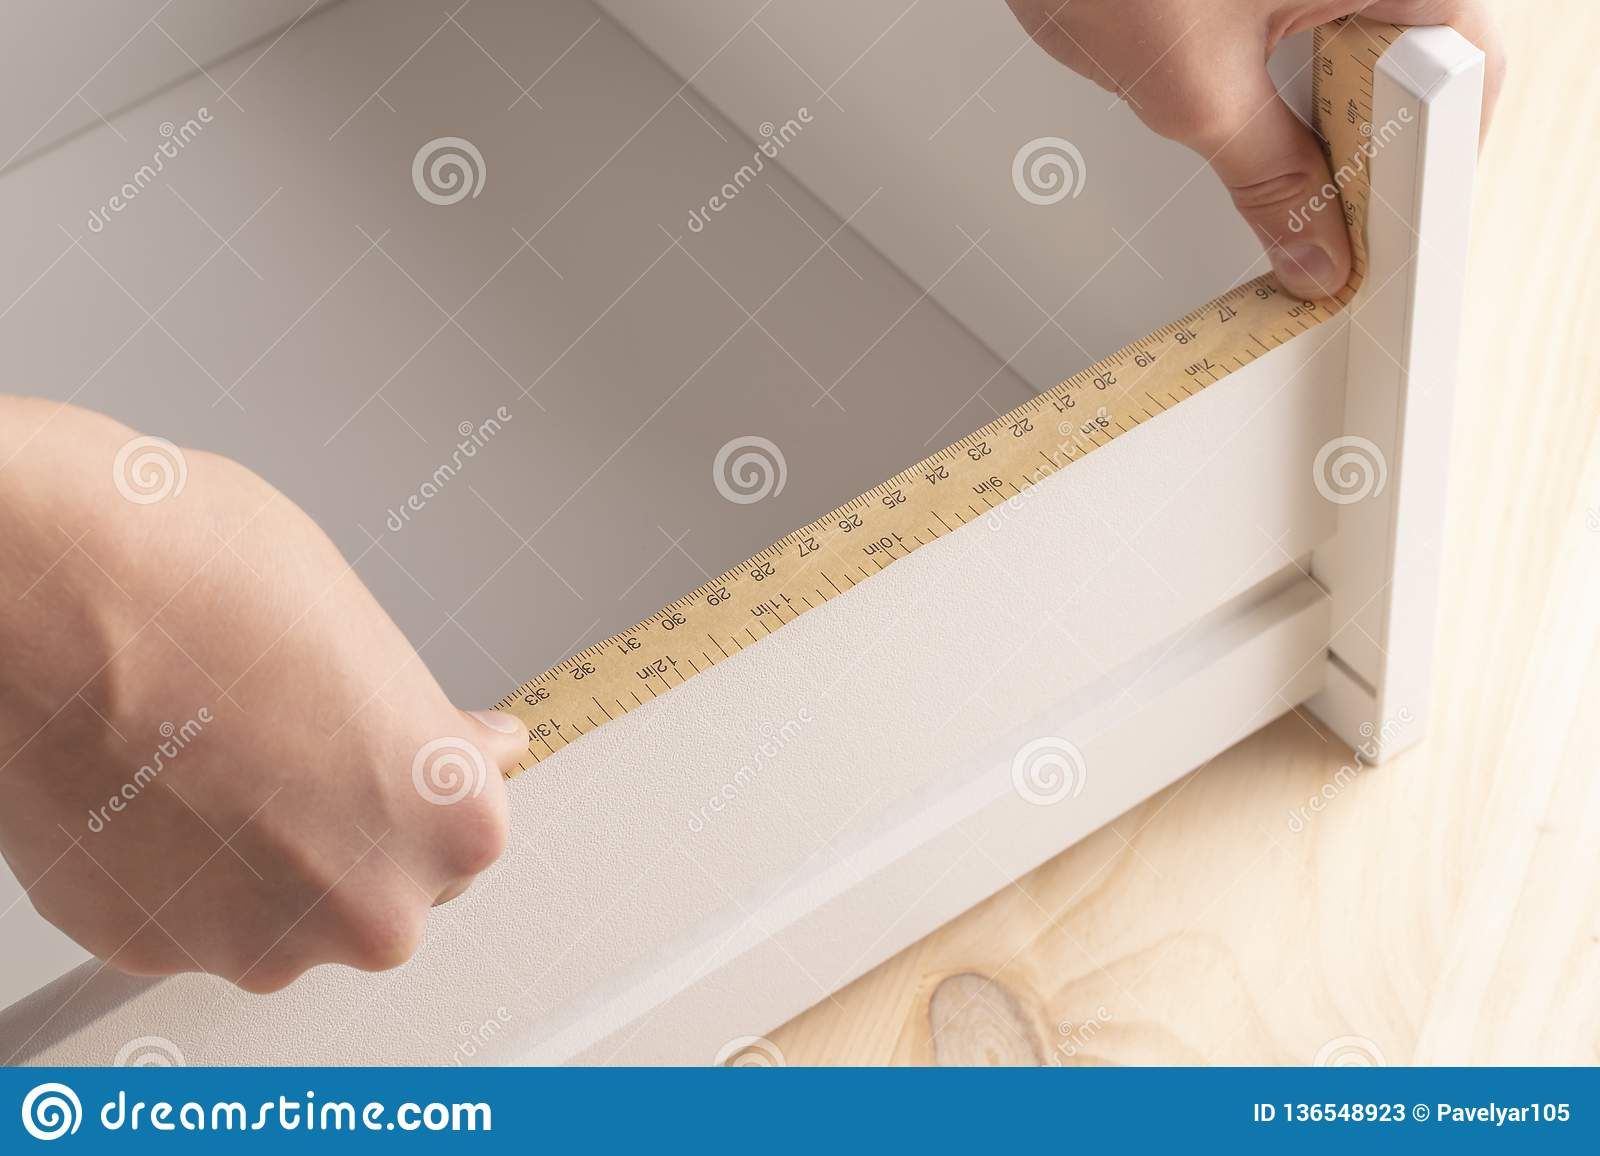 A young man measures the shelves with a measuring tool